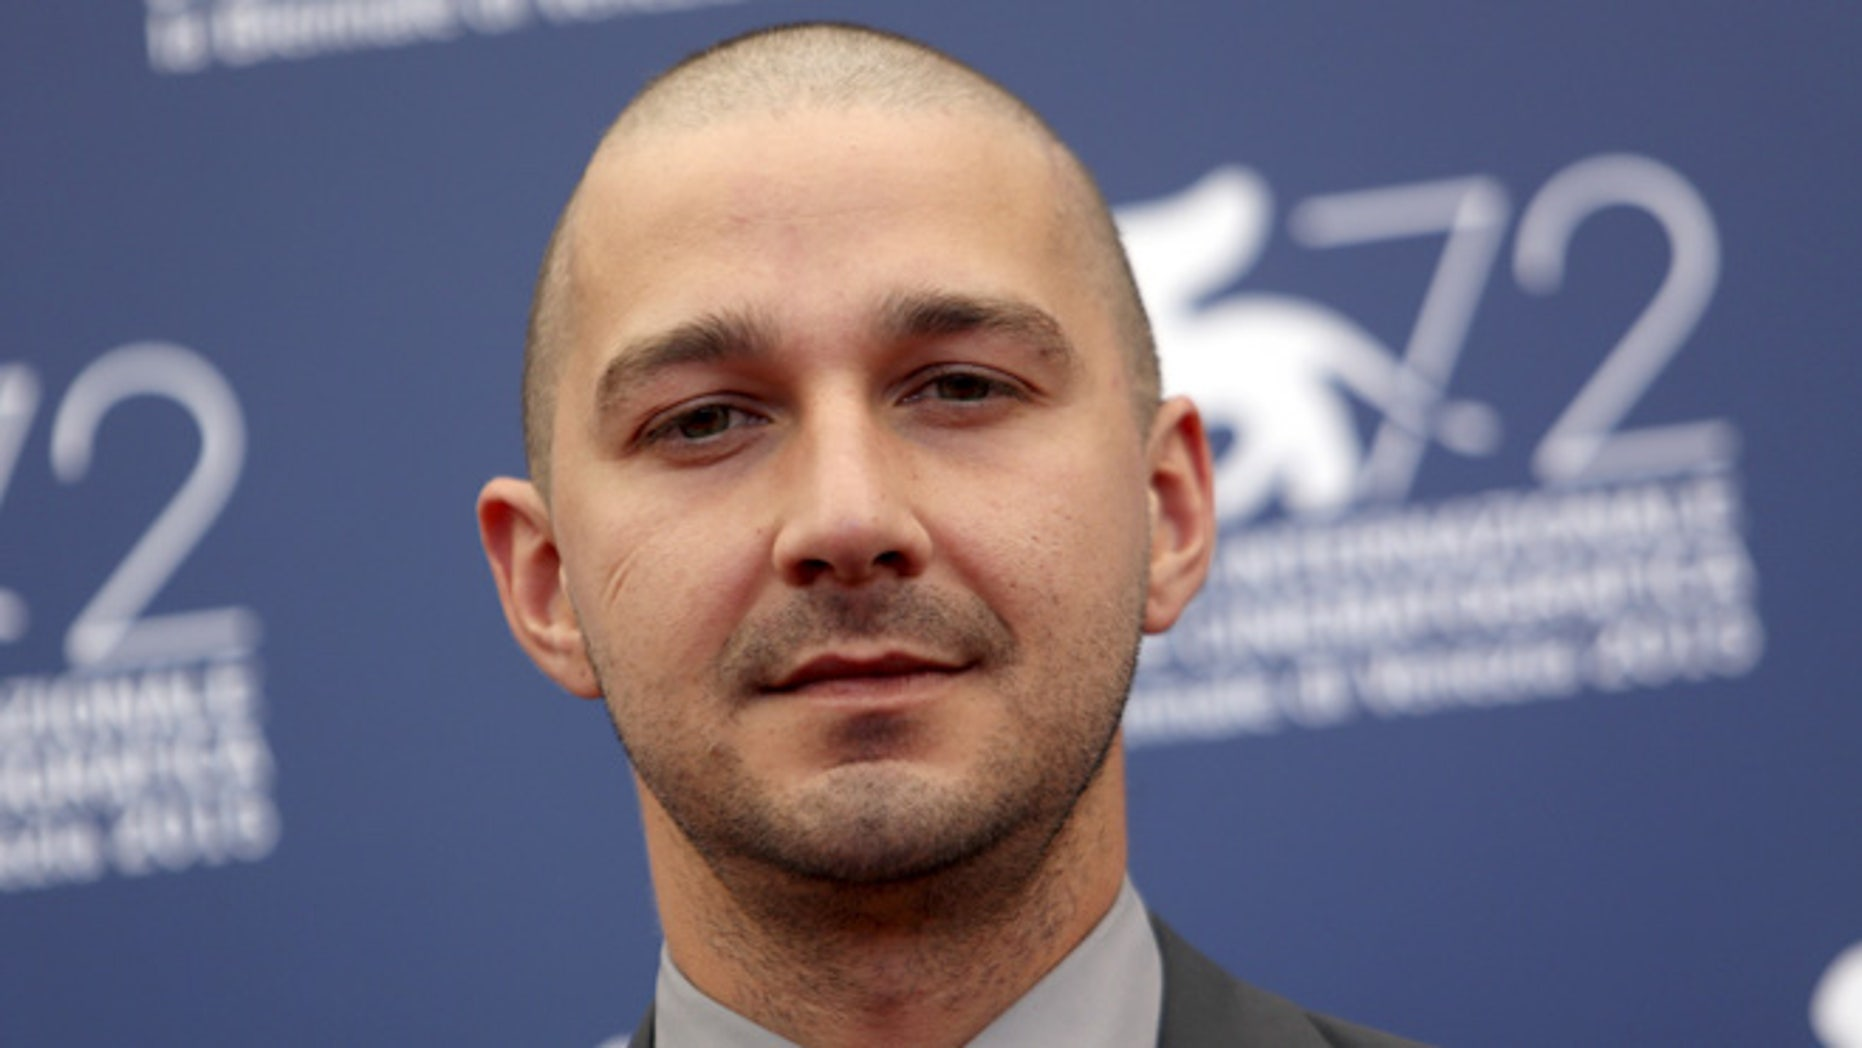 September 6, 2015. Actor Shia LaBeouf at the Venice Film Festival.